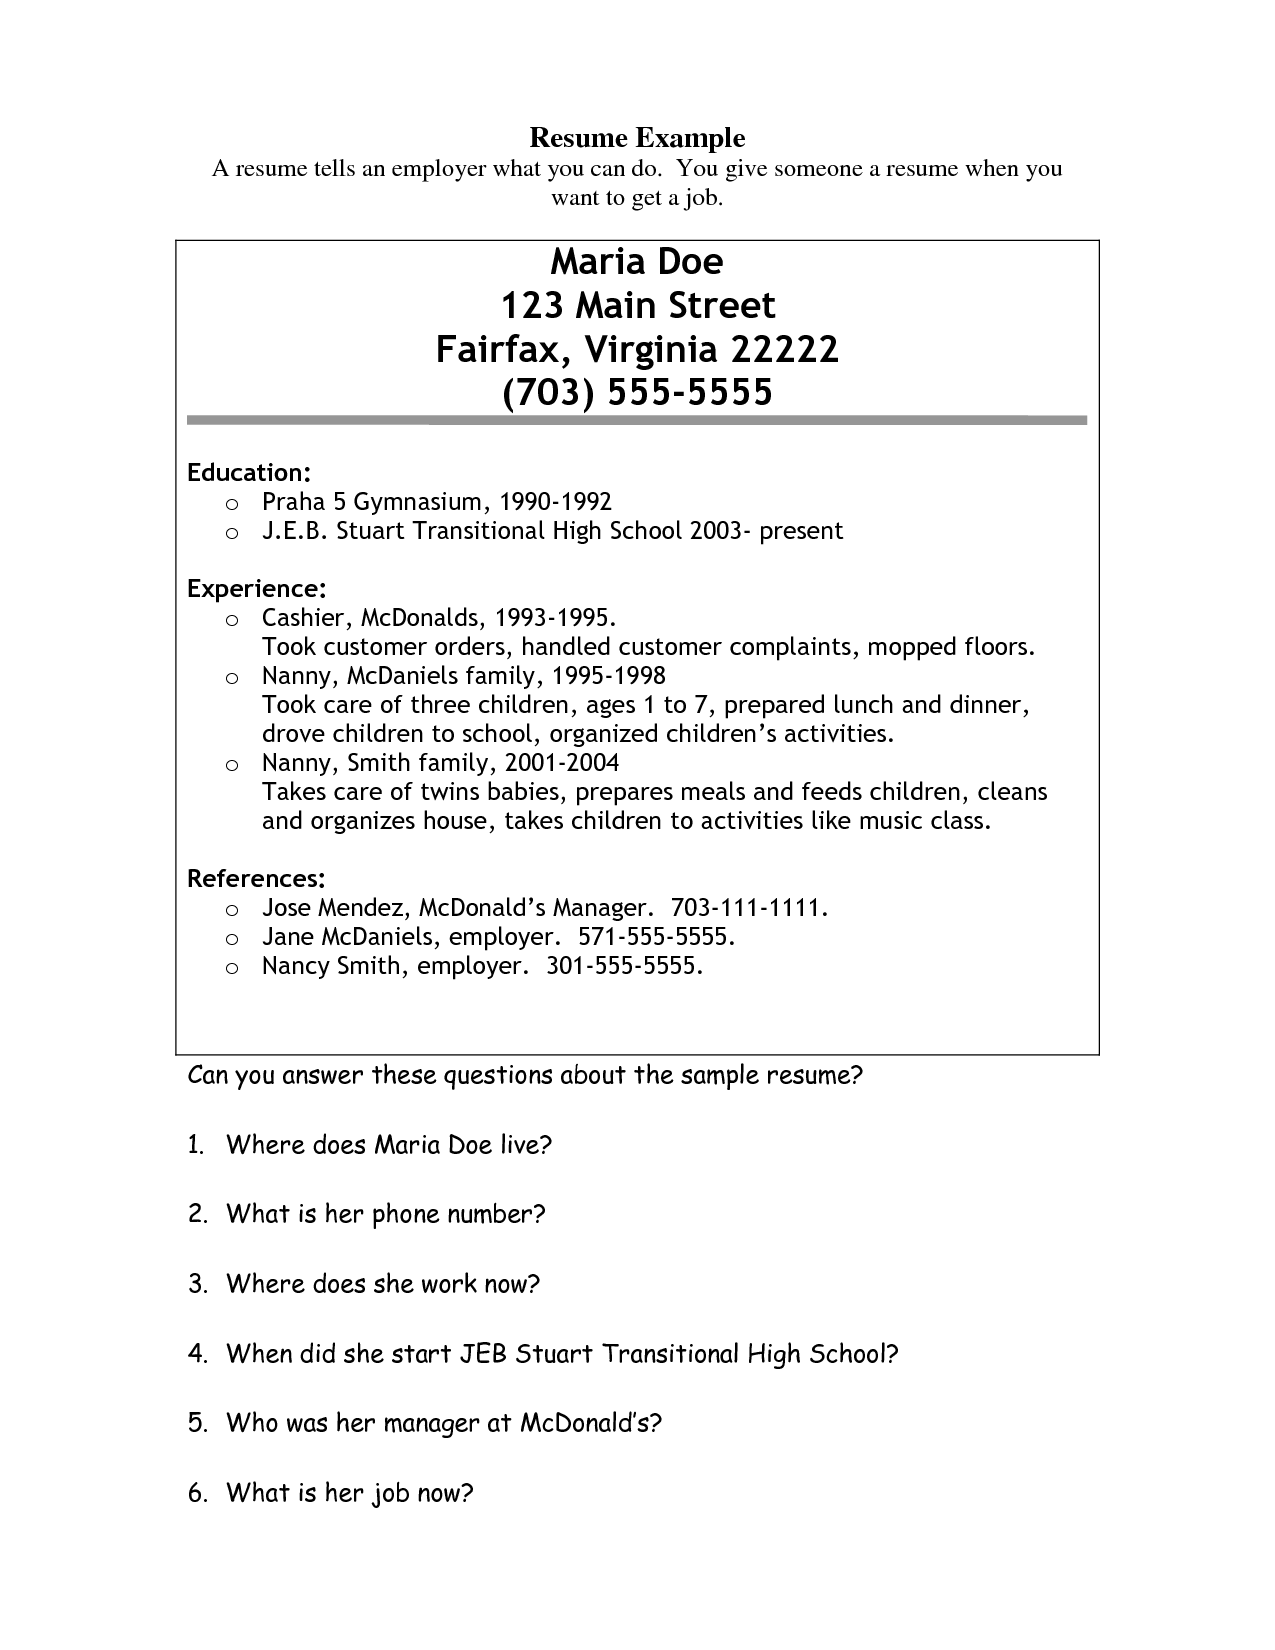 resume for service crew in mcdonalds